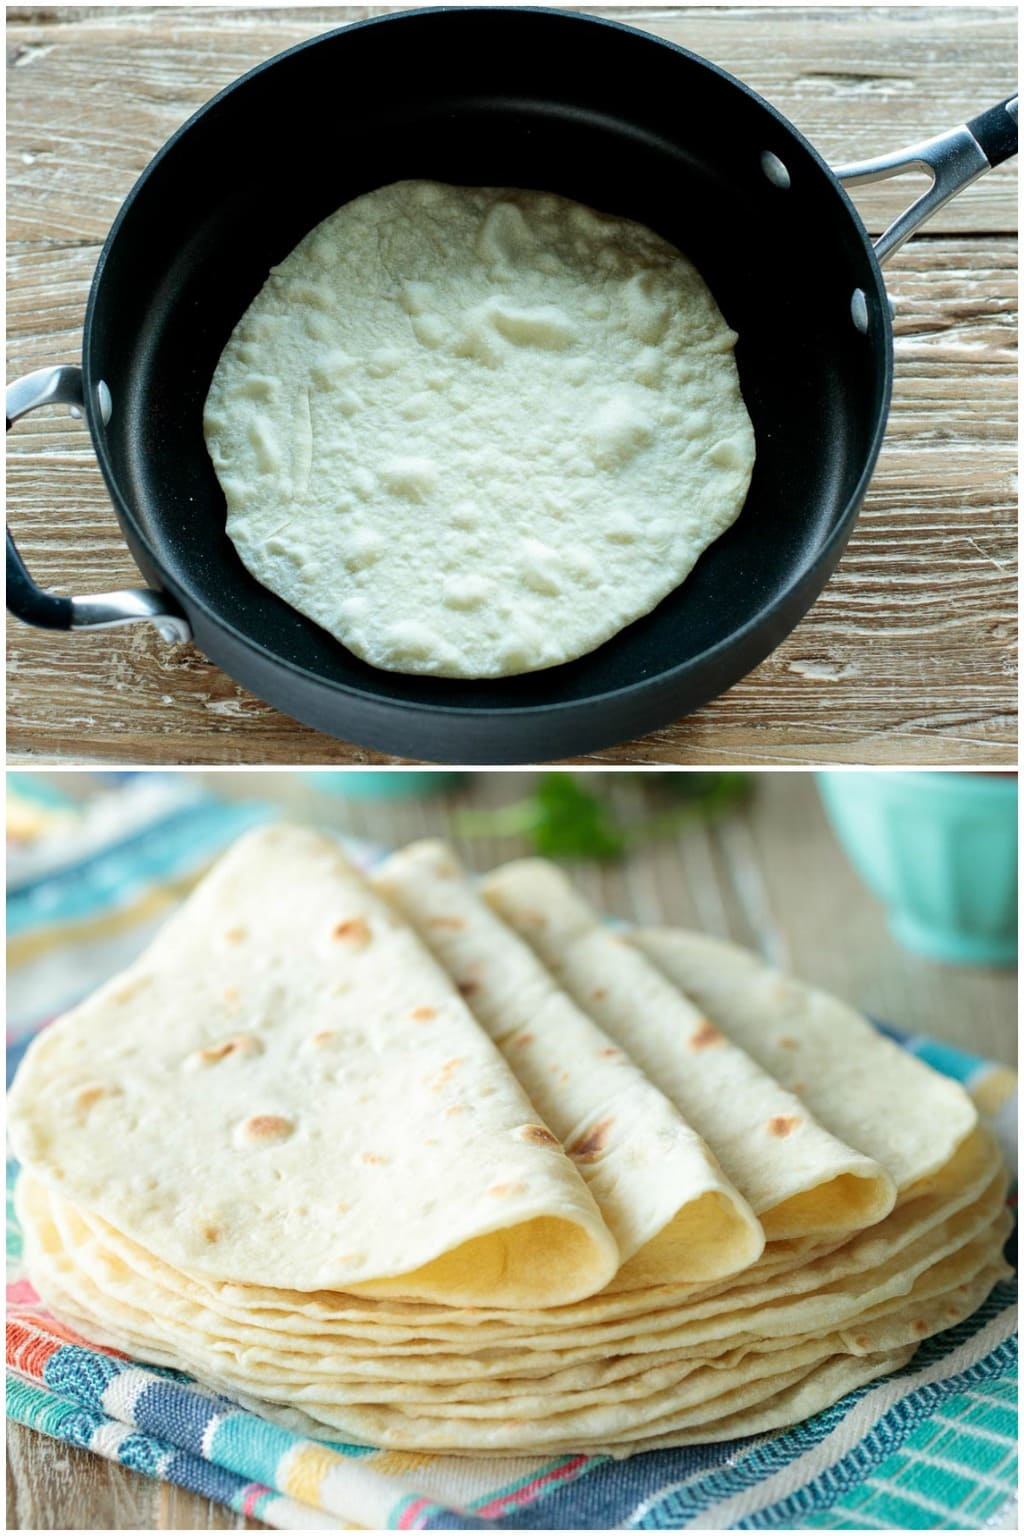 Collage photos of Best Ever Homemade Flour Tortillas being cooked and served.